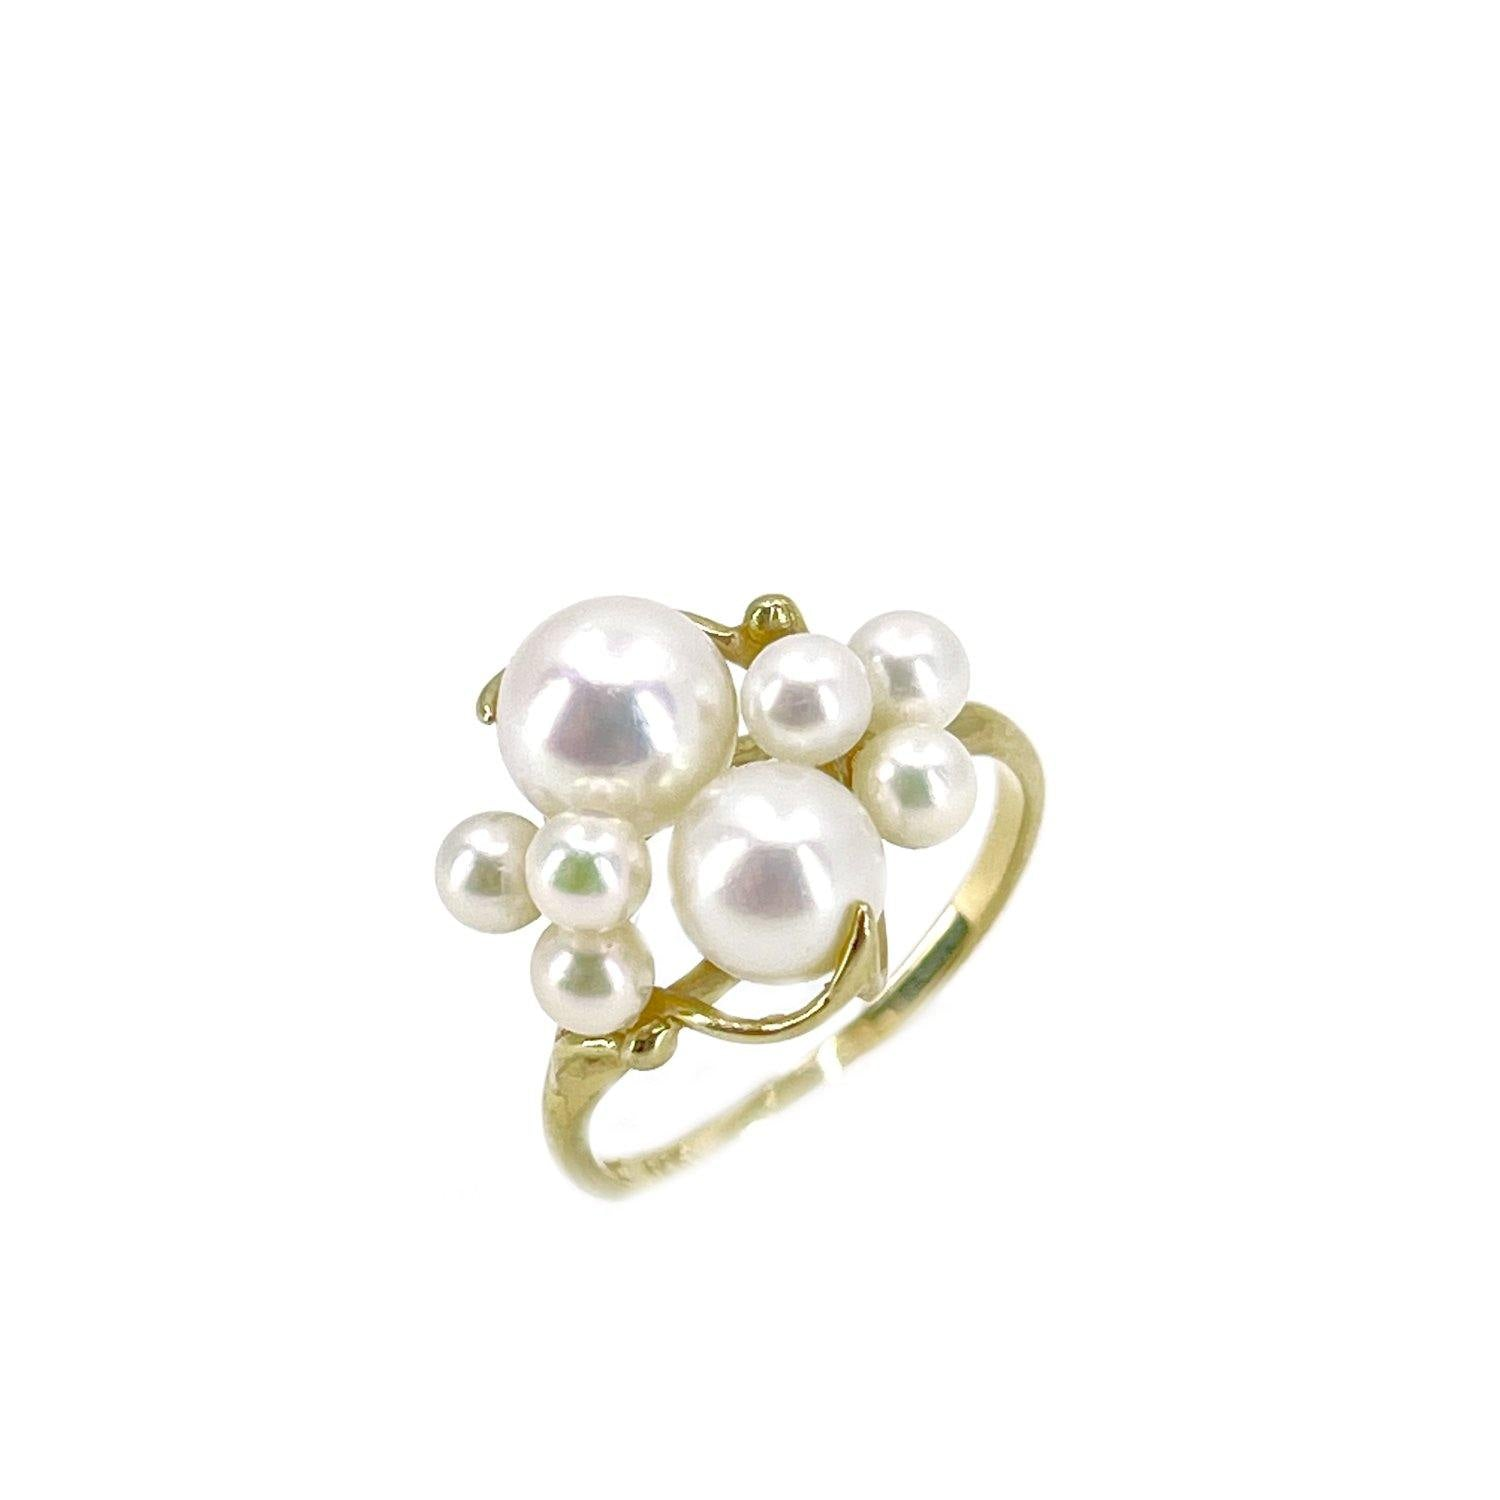 Na Hoku Sultan Cluster Design Japanese Saltwater Akoya Cultured Pearl Ring- 14K Yellow Gold Size 6 1/4